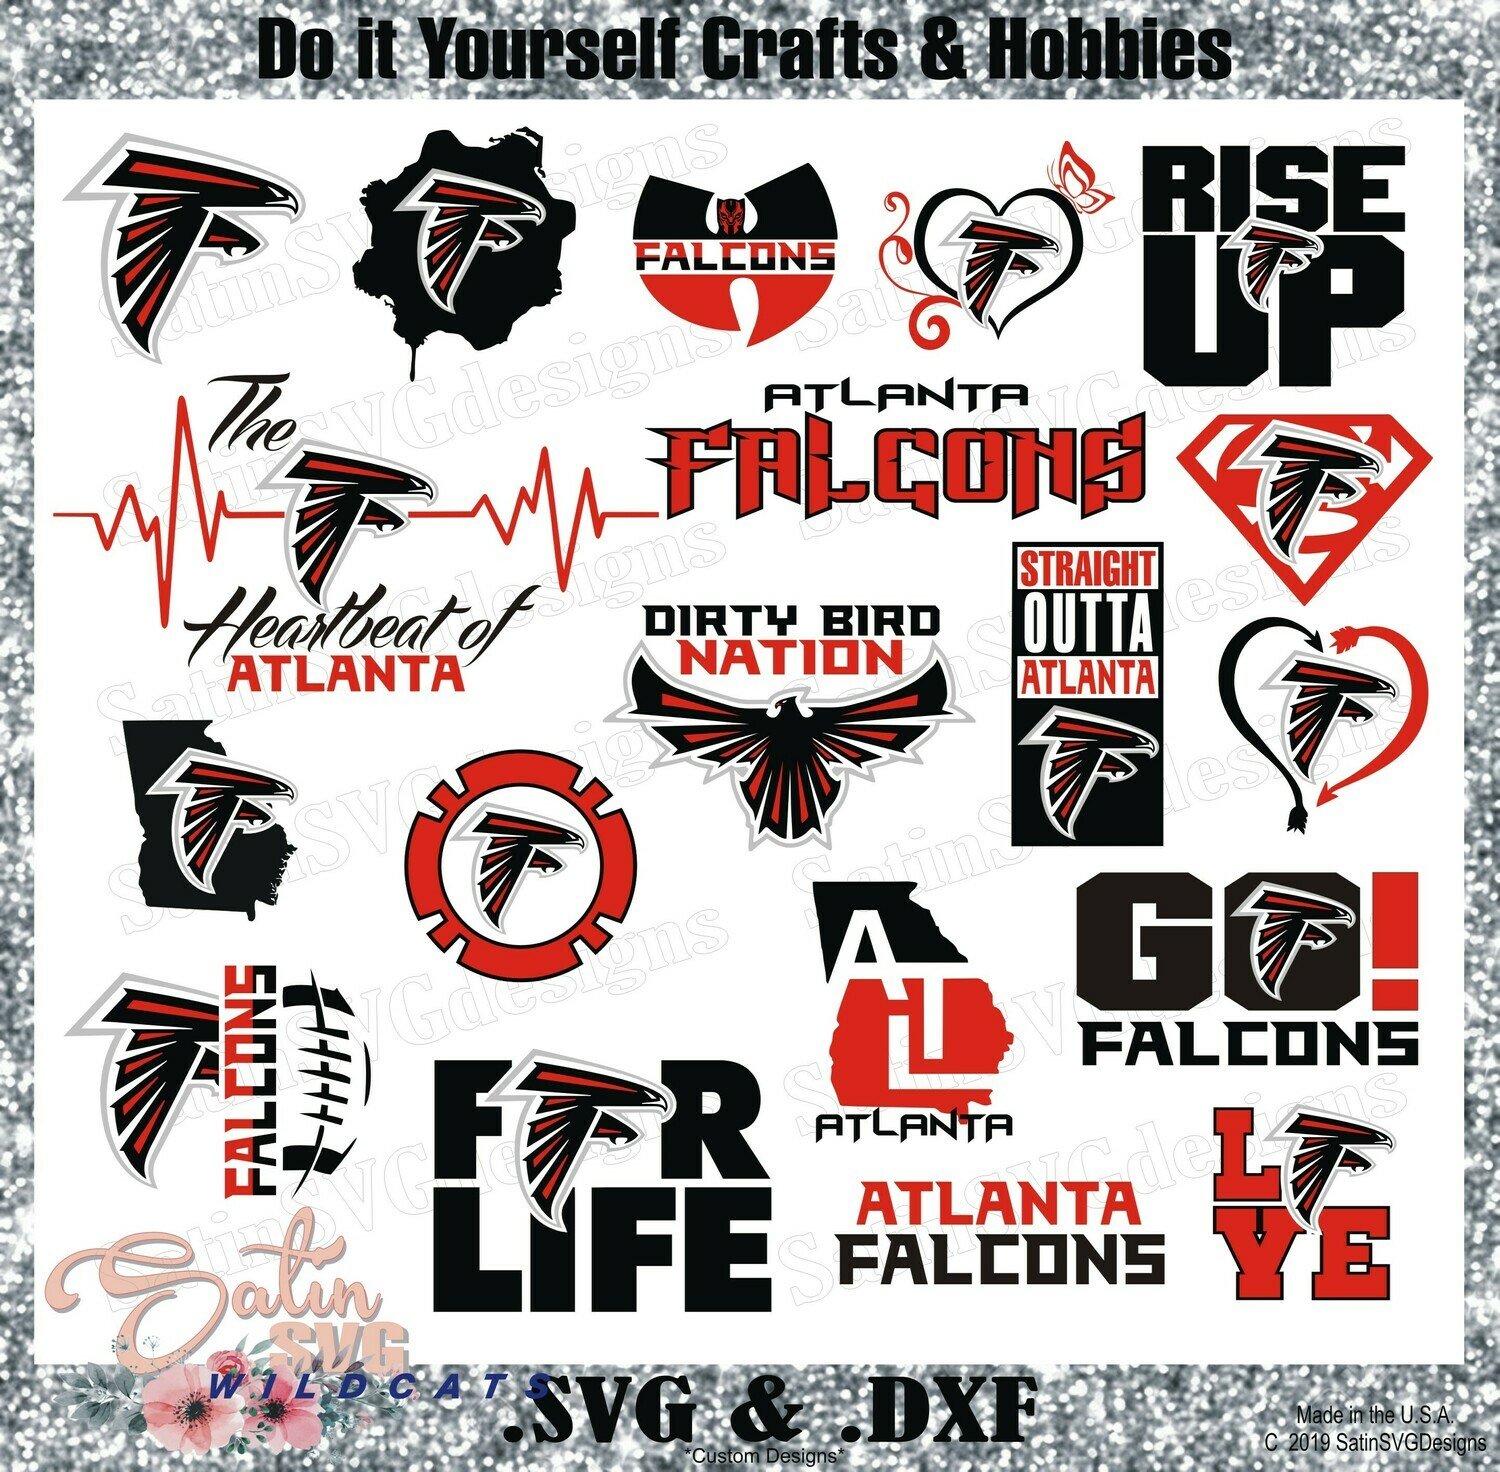 Atlanta Falcons MEGA-Bundle (All 3 Sets) NEW Custom Design SVG Files, Cricut, Silhouette Studio, Digital Cut Files